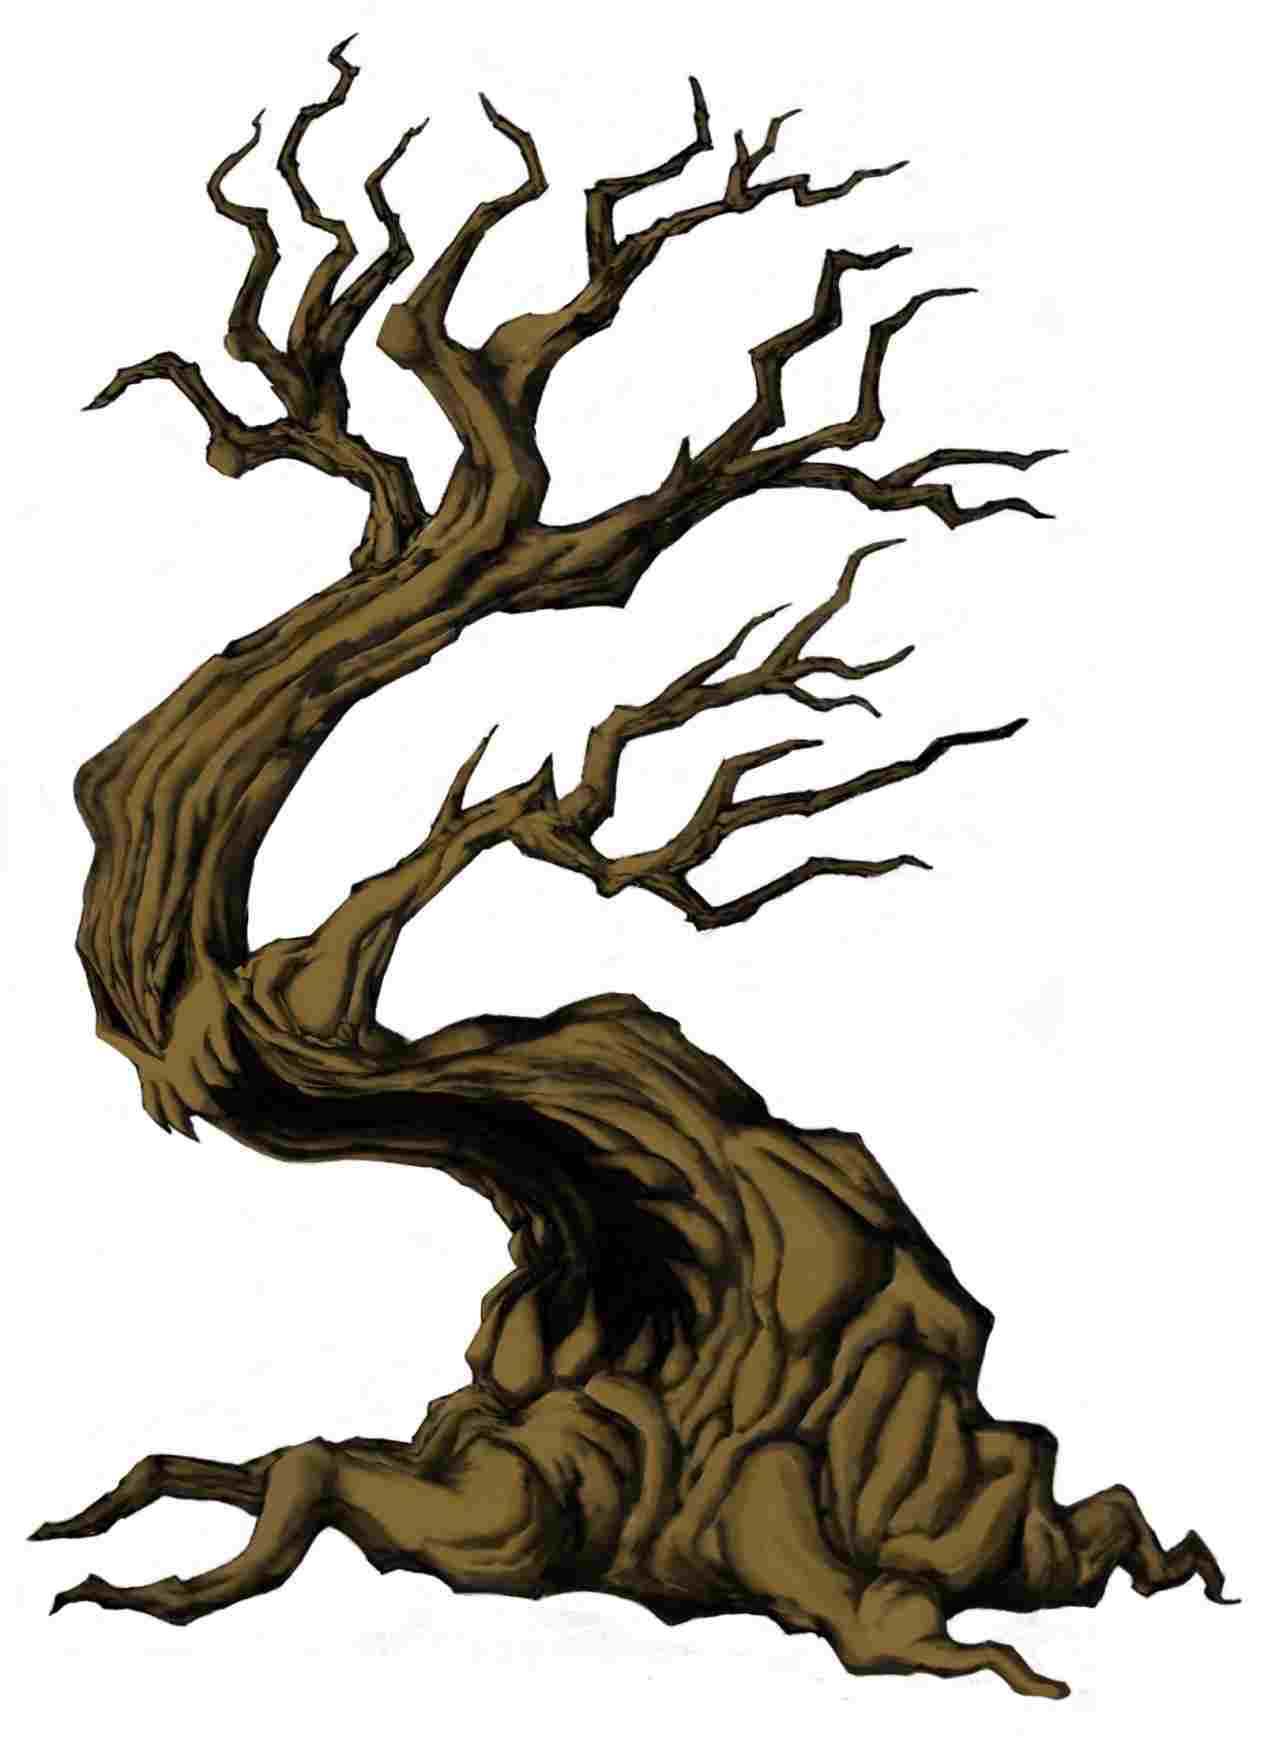 1264x1738 creepy easy creepy forest drawing tree art scary drawing untitled